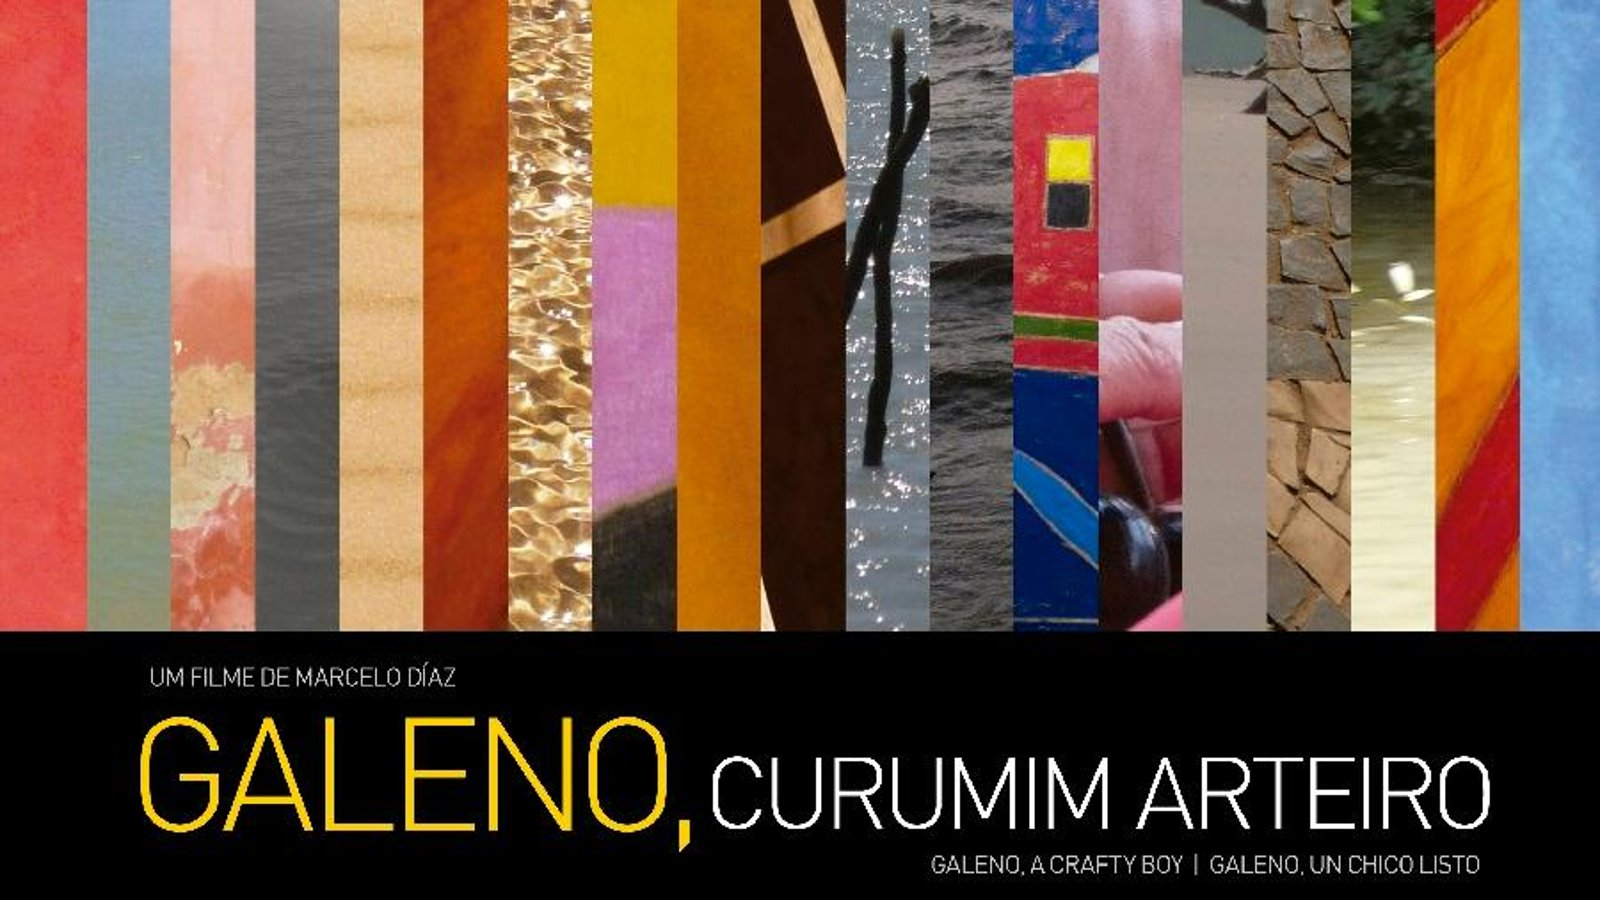 Galeno, A Crafty Boy (Galeno, Curumim Arteiro) - An Award-Winning Brazilian Artist's Source of Inspiration